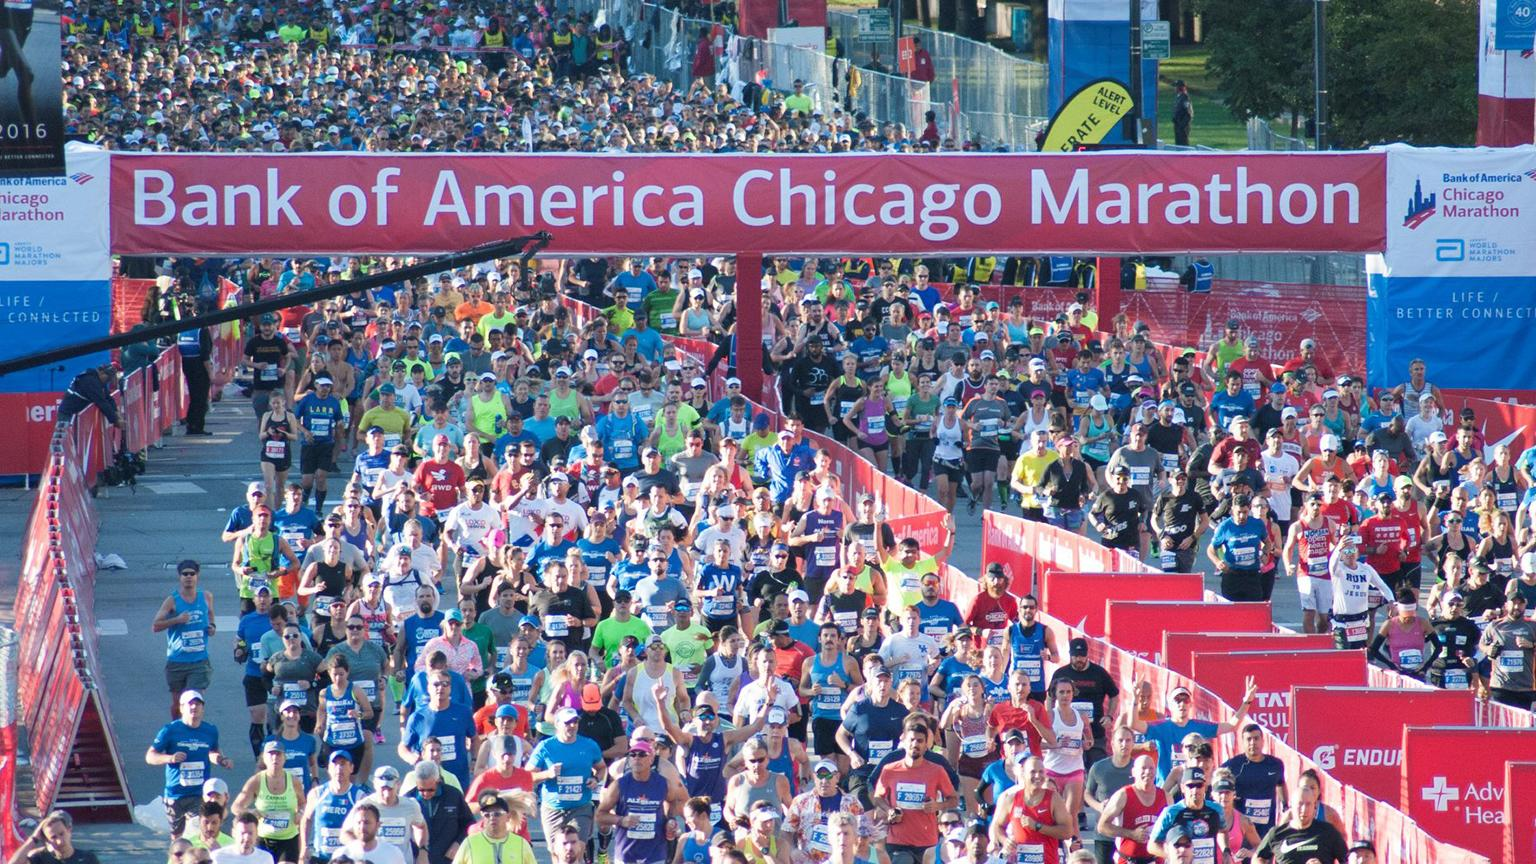 (Bank of America Chicago Marathon / Facebook)